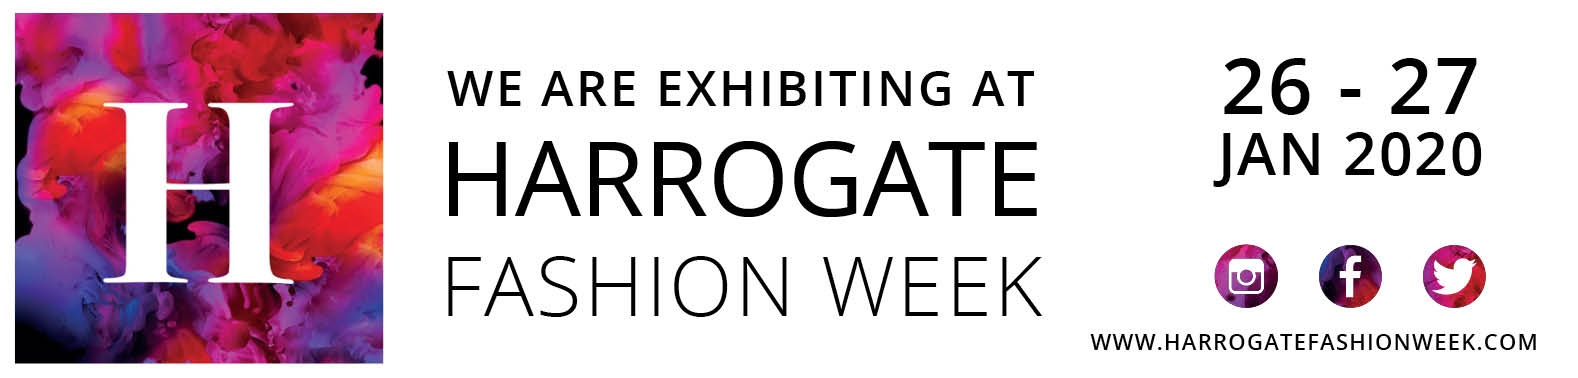 Harrogate Fashion E-signature exhibitors2 (003)